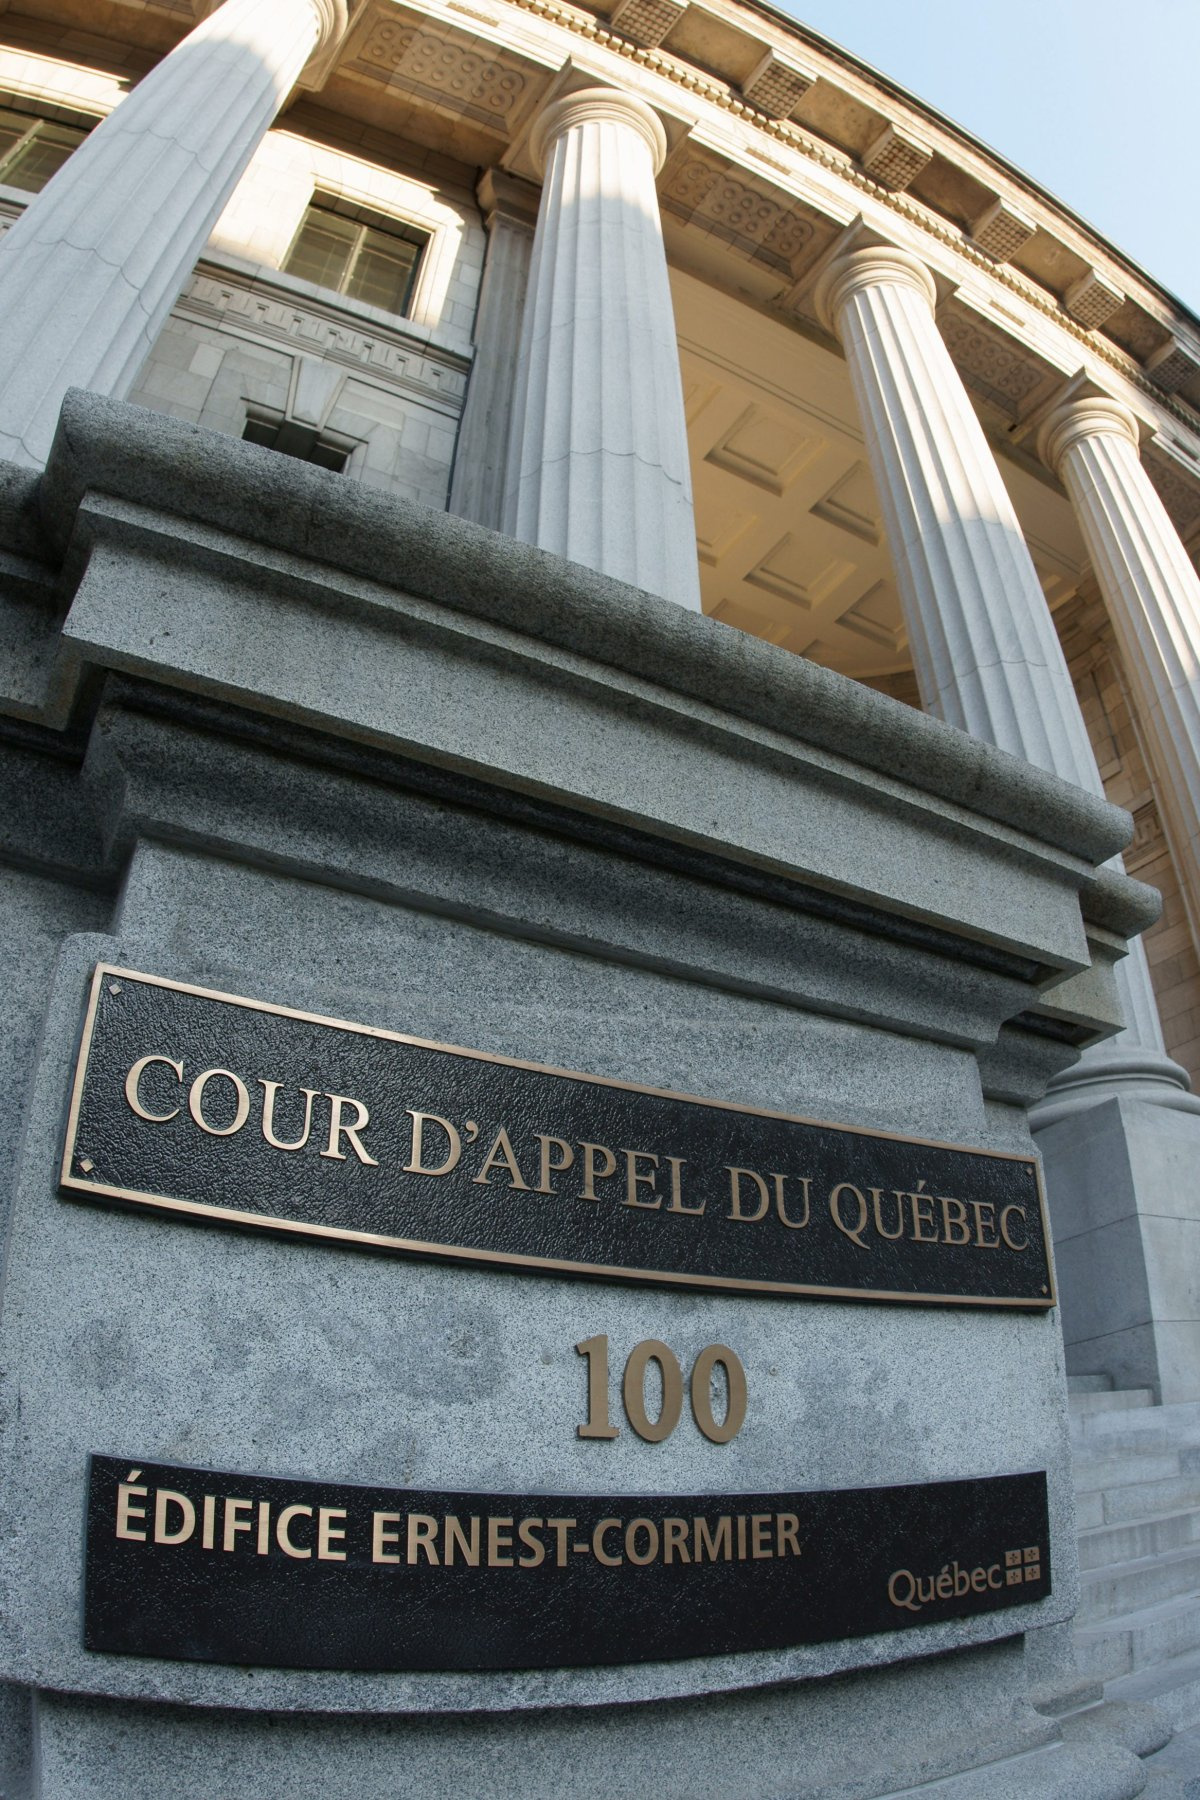 Quebec court of appeal located on Notre-Dame street in Old Montreal. Mario Beauregard/CPI/The Canadian Press.